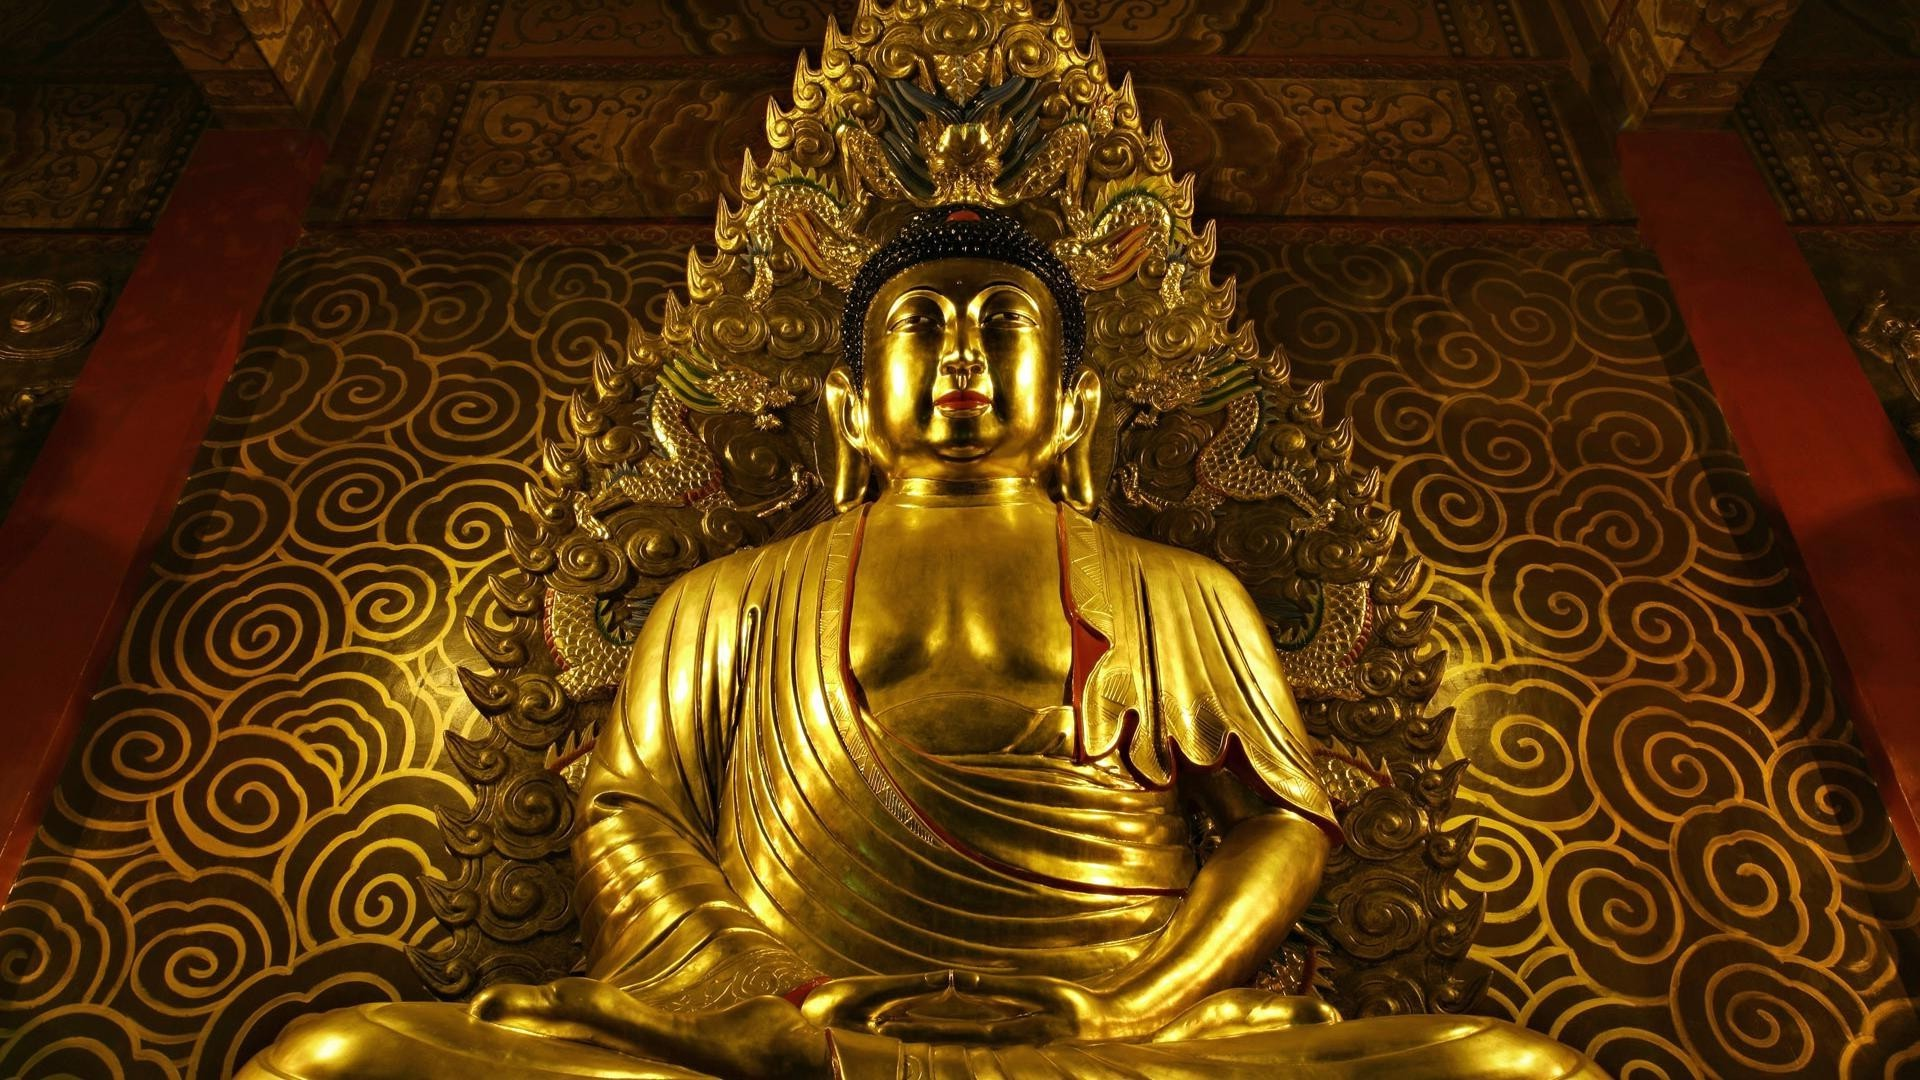 city and architecture gold buddha religion temple meditation decoration wat spirituality sculpture ancient zen luxury statue art castle travel peace worship monastery sacred